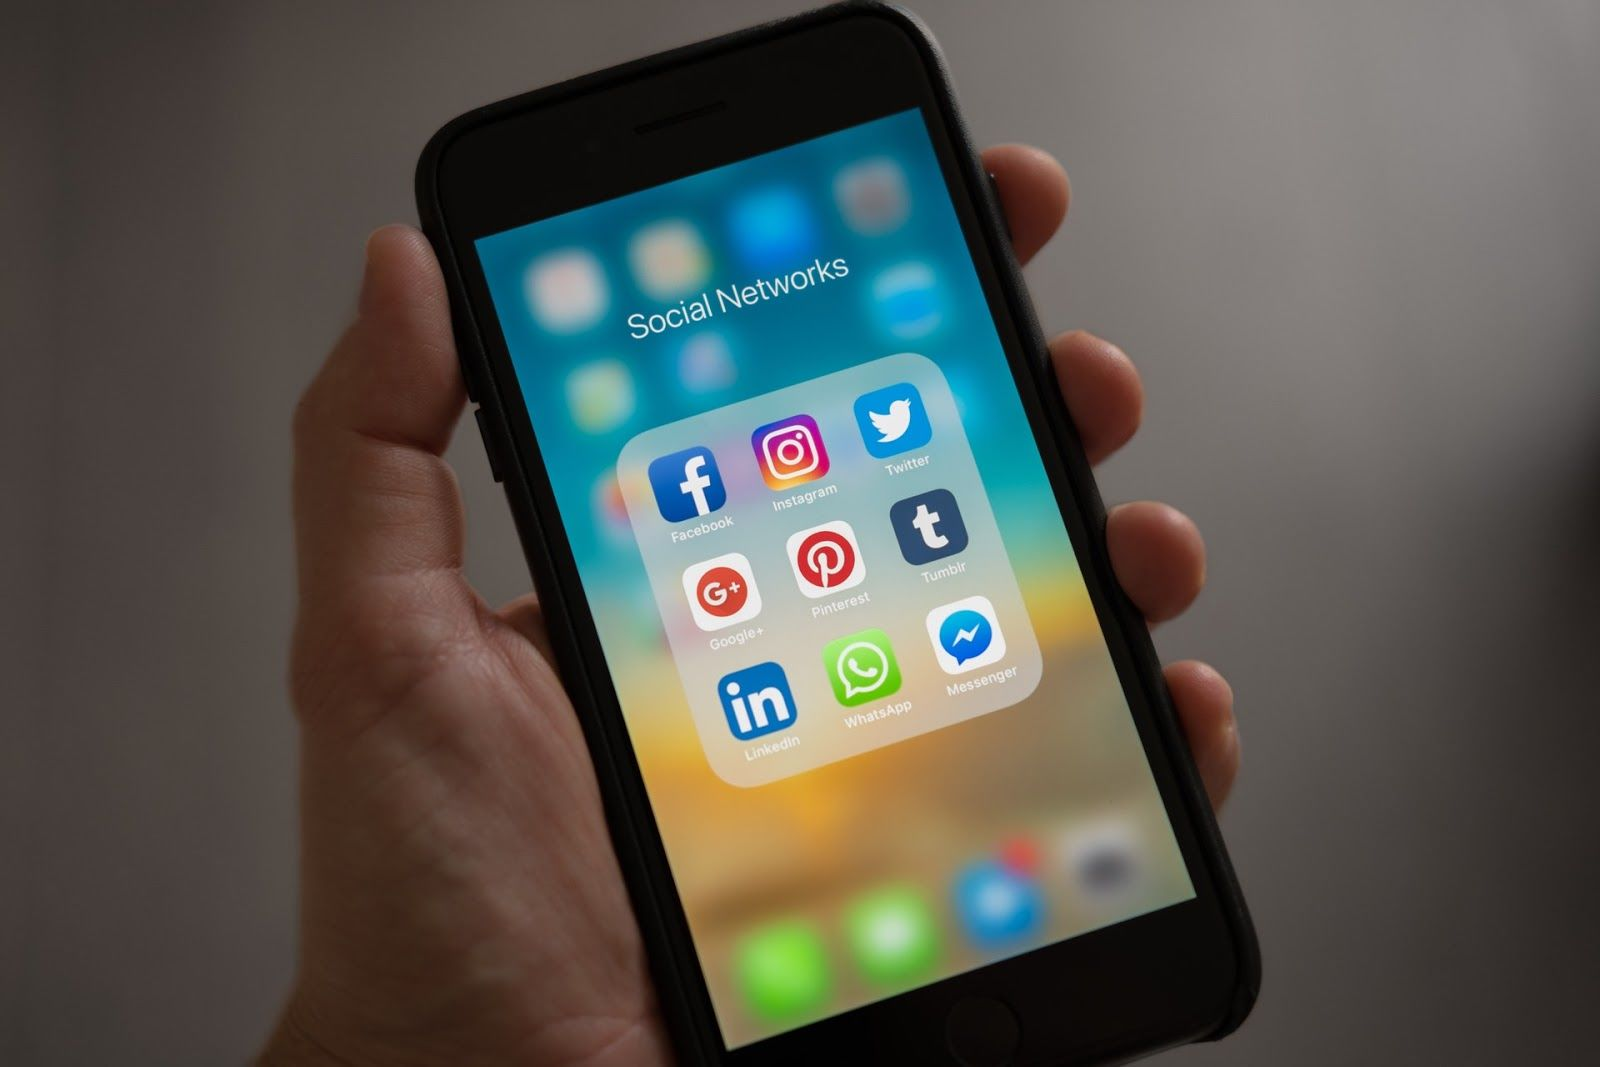 iphone social networks